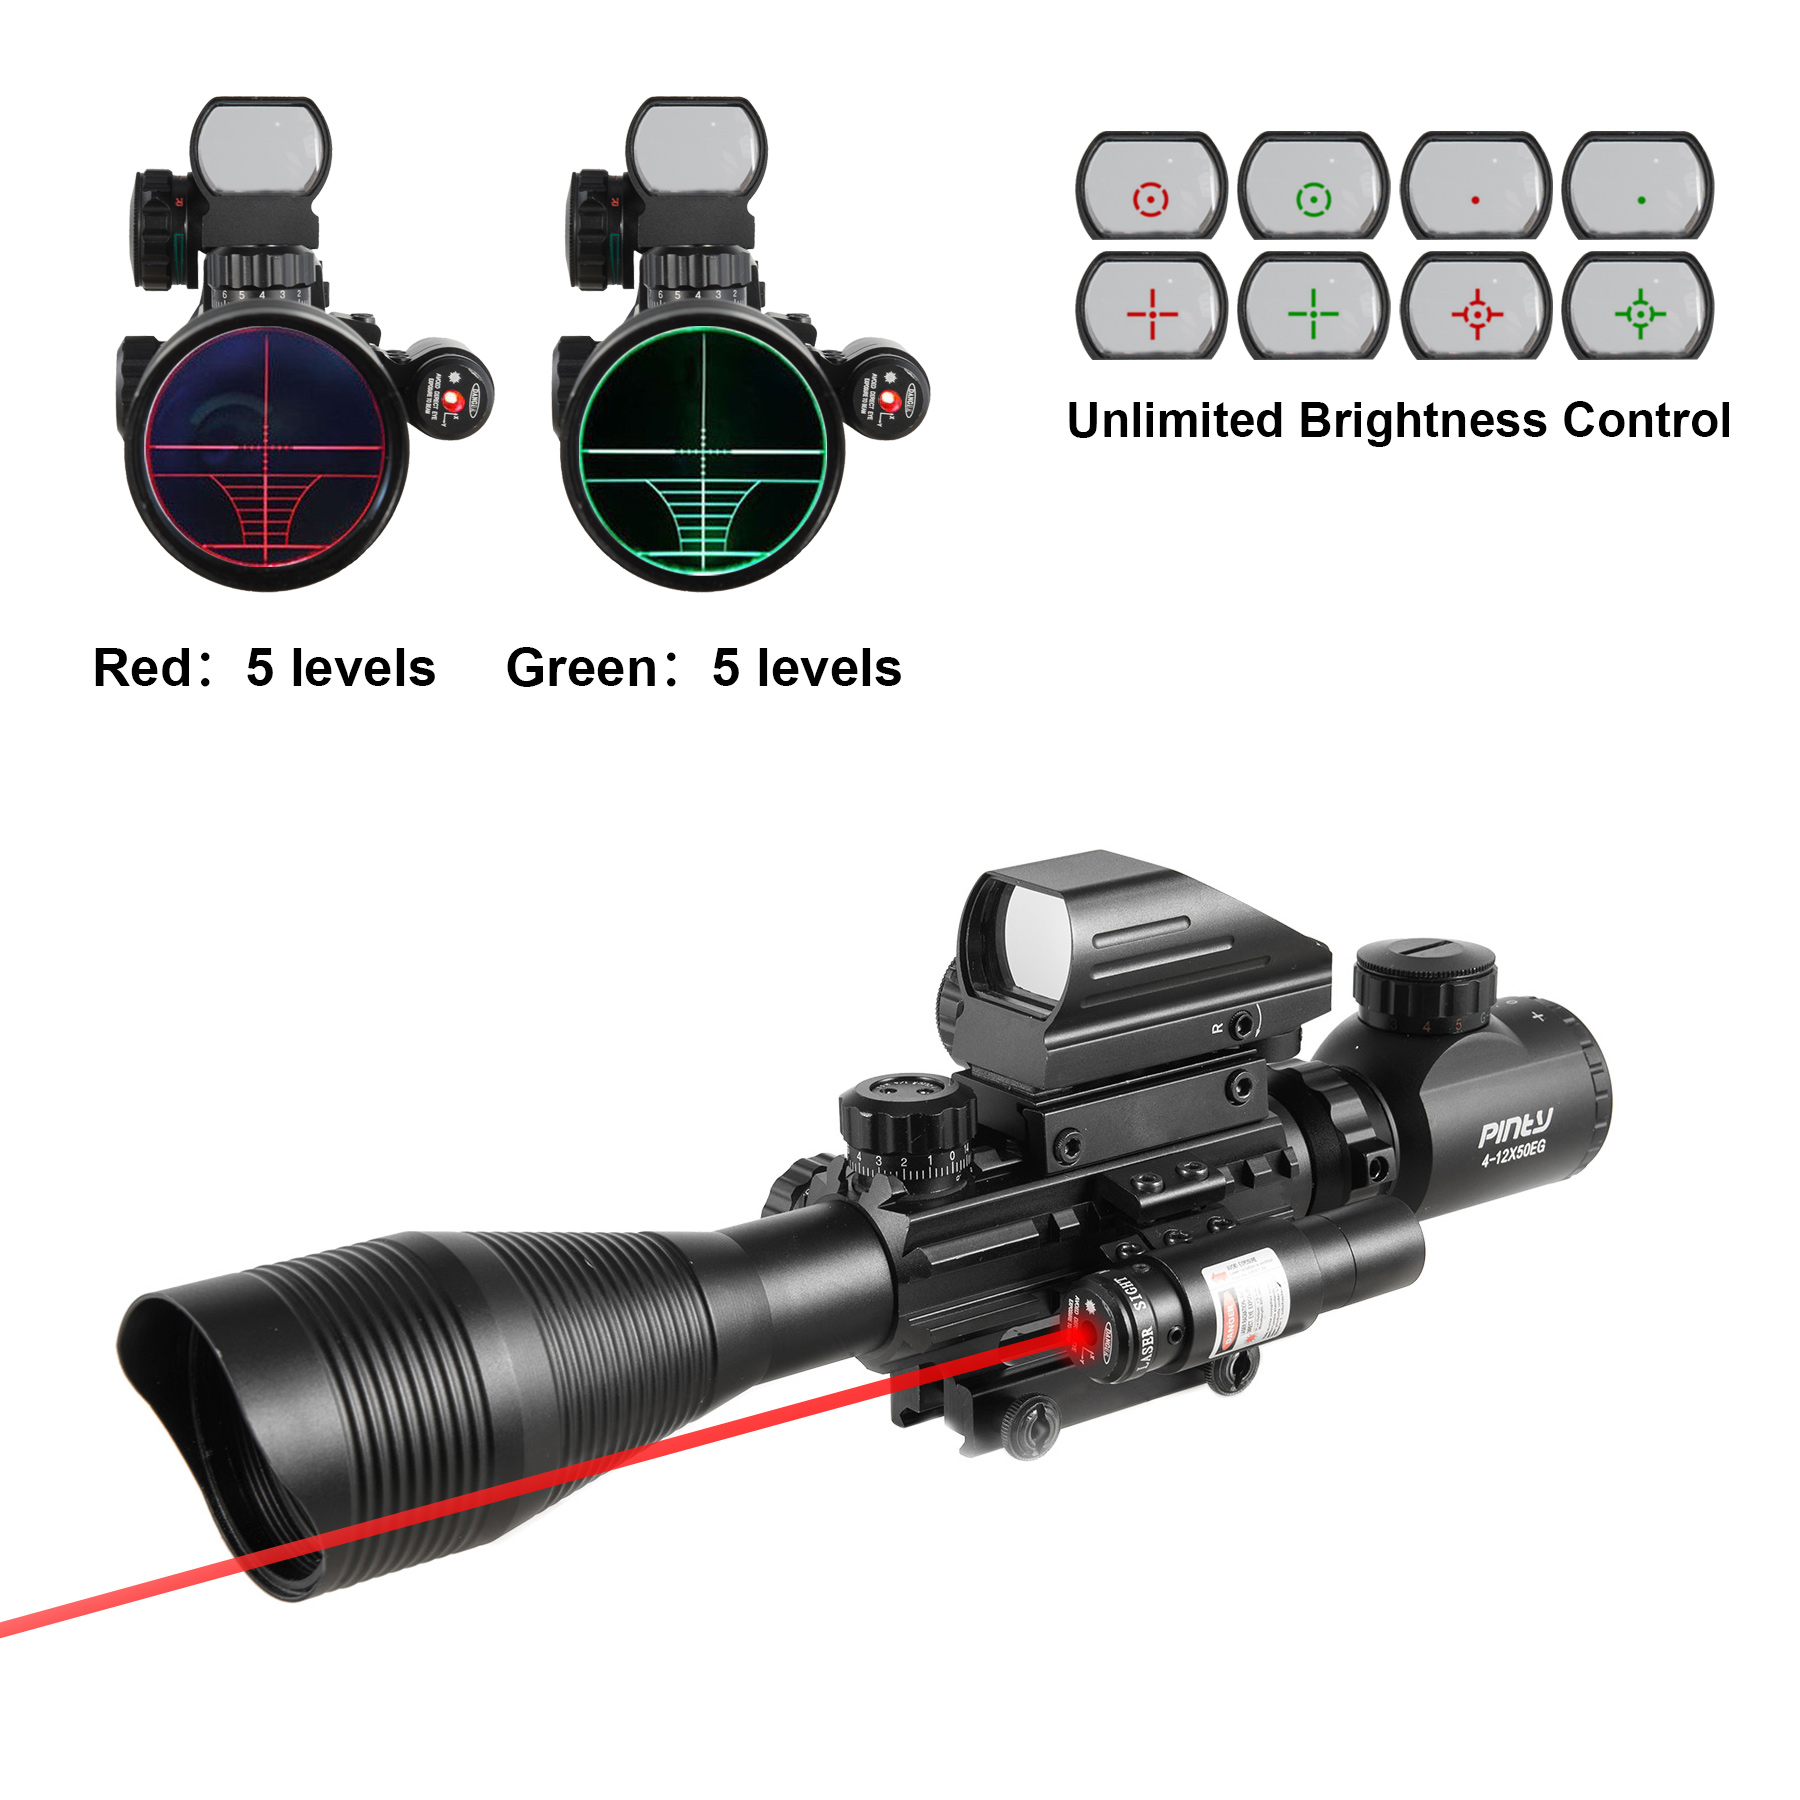 4-12X50EG Rangefinder Mil Dot Reticle Riflescope Laser Sight and Red Dot Sight by